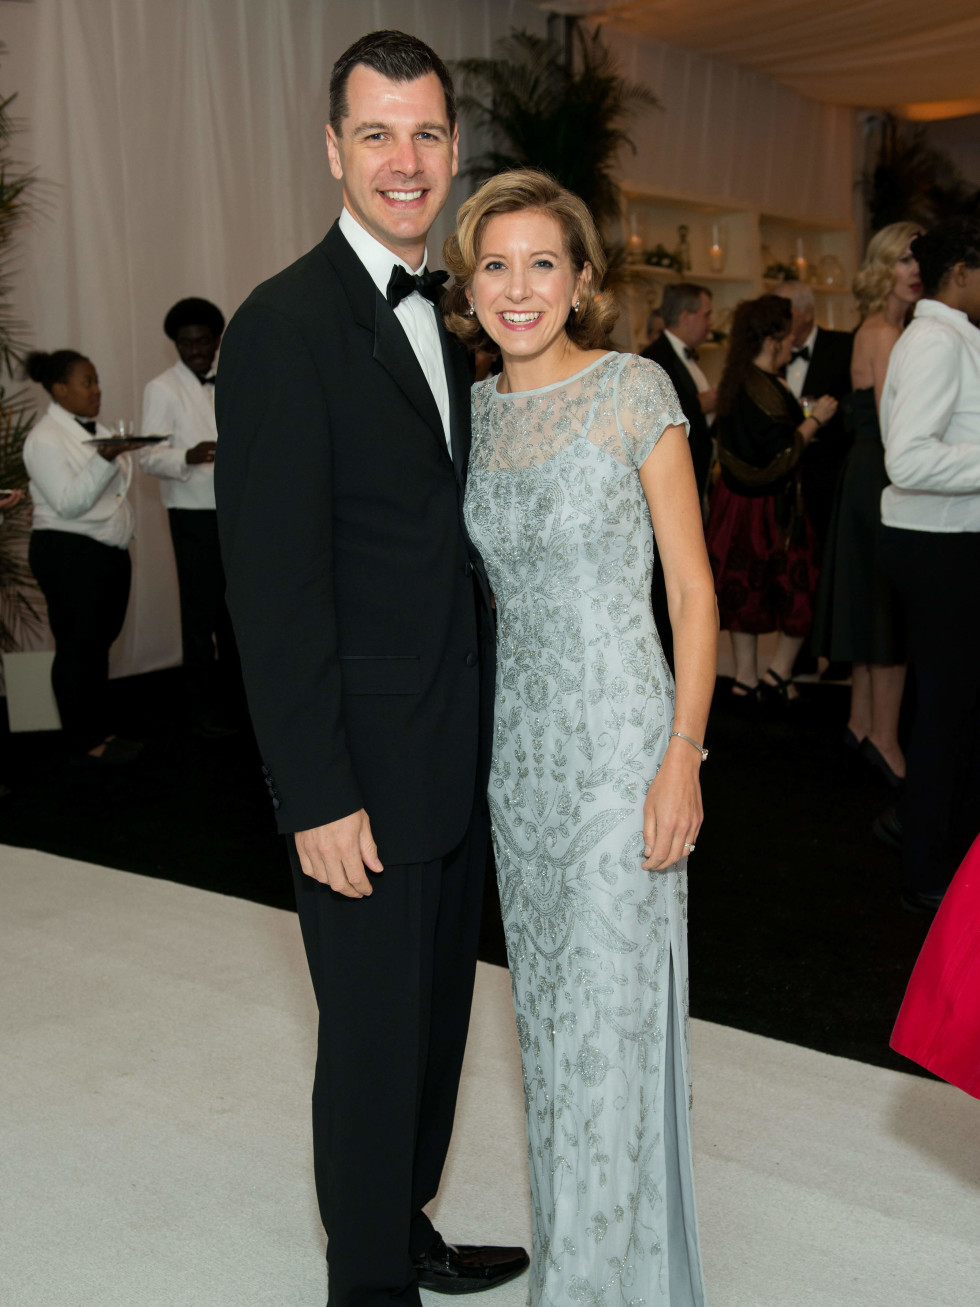 Jones Hall 50th Ball, Mark Hanson (Houston Symphony CEO) and Christina Hanson